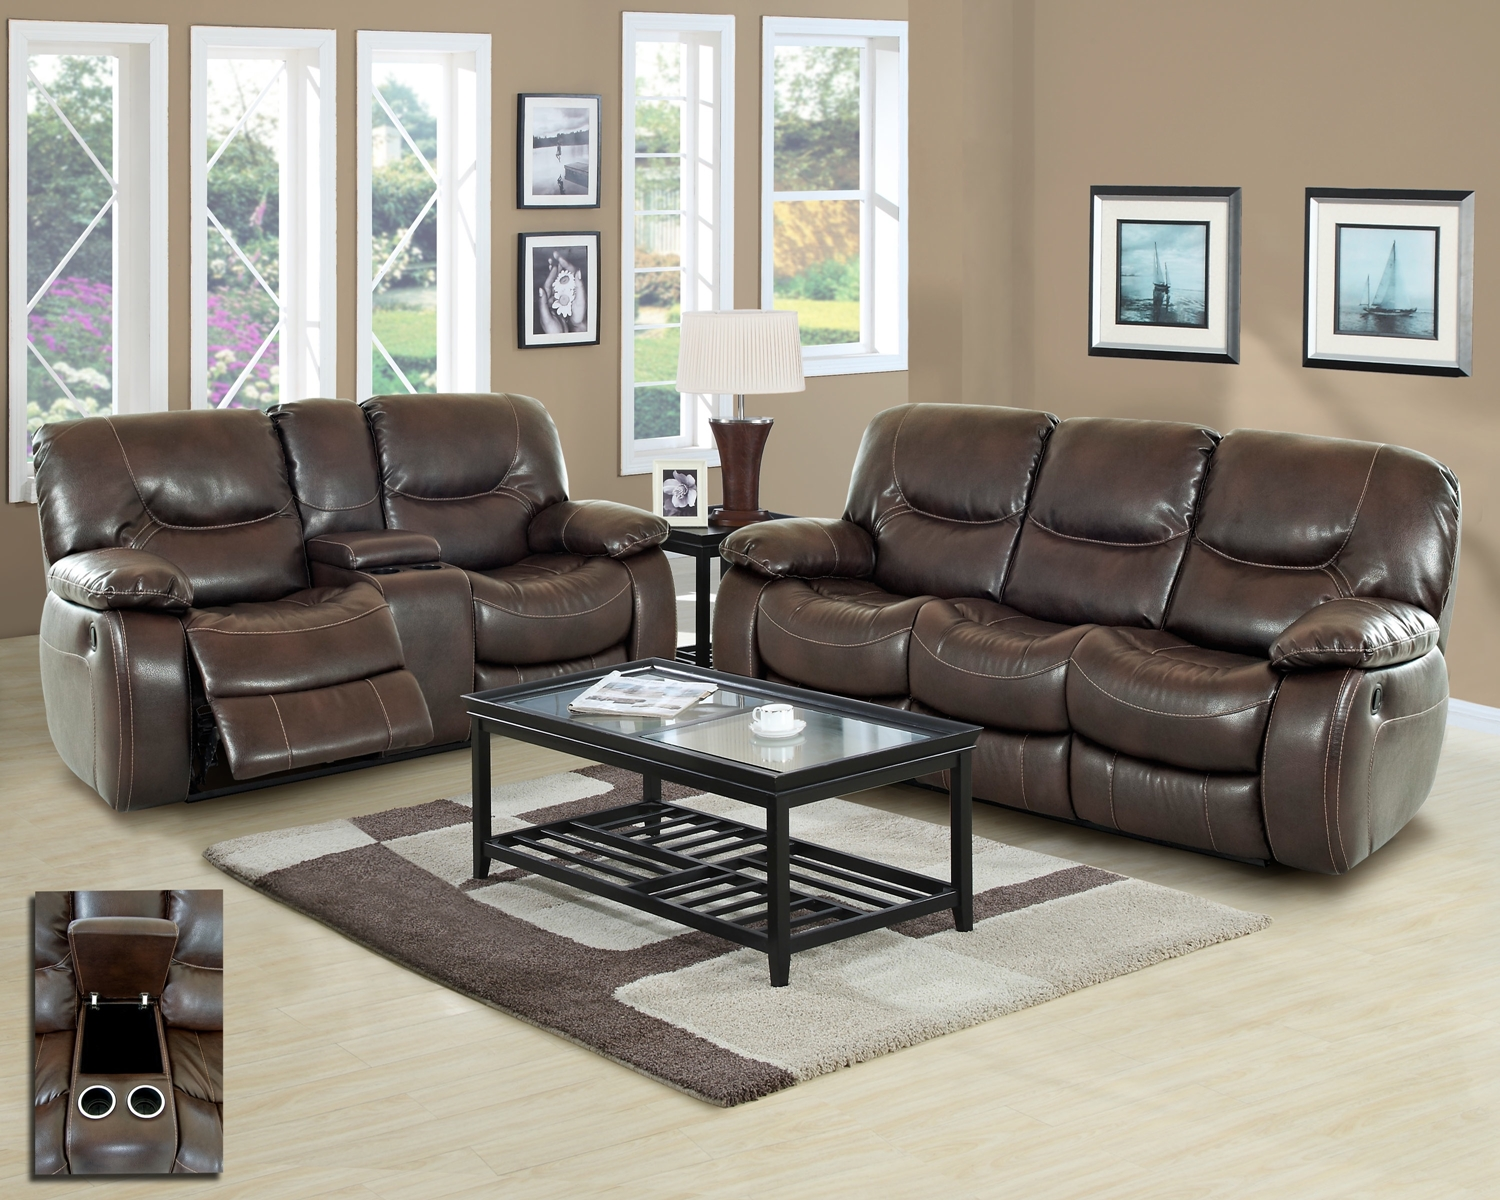 Harvey casual motion brown bonded leather living room set w cup holders for Motion living room furniture